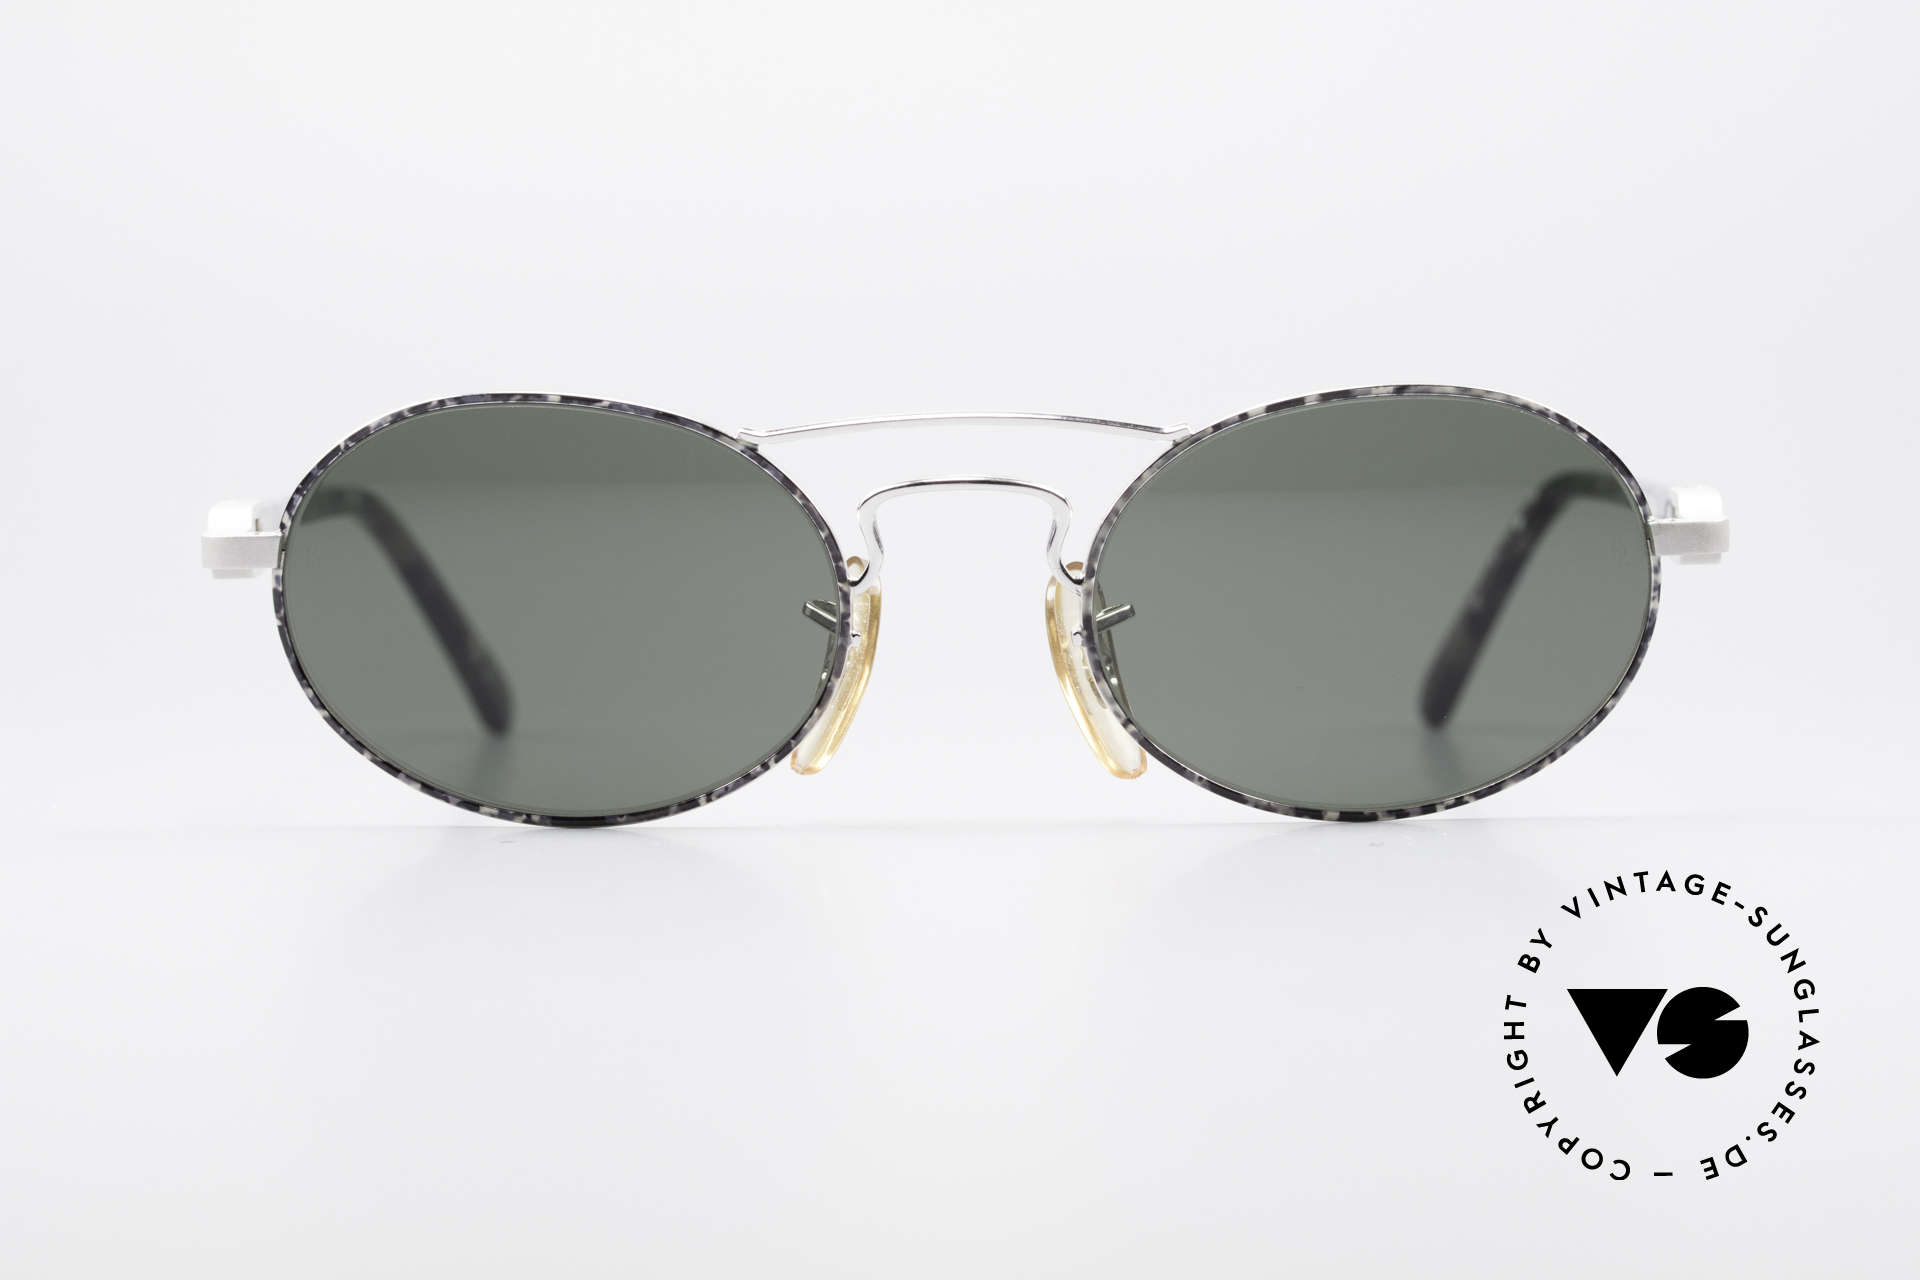 Ray Ban Chaos Oval 90's B&L USA Shades W2009, classic unisex designer sunglasses from the mid 90's, Made for Men and Women